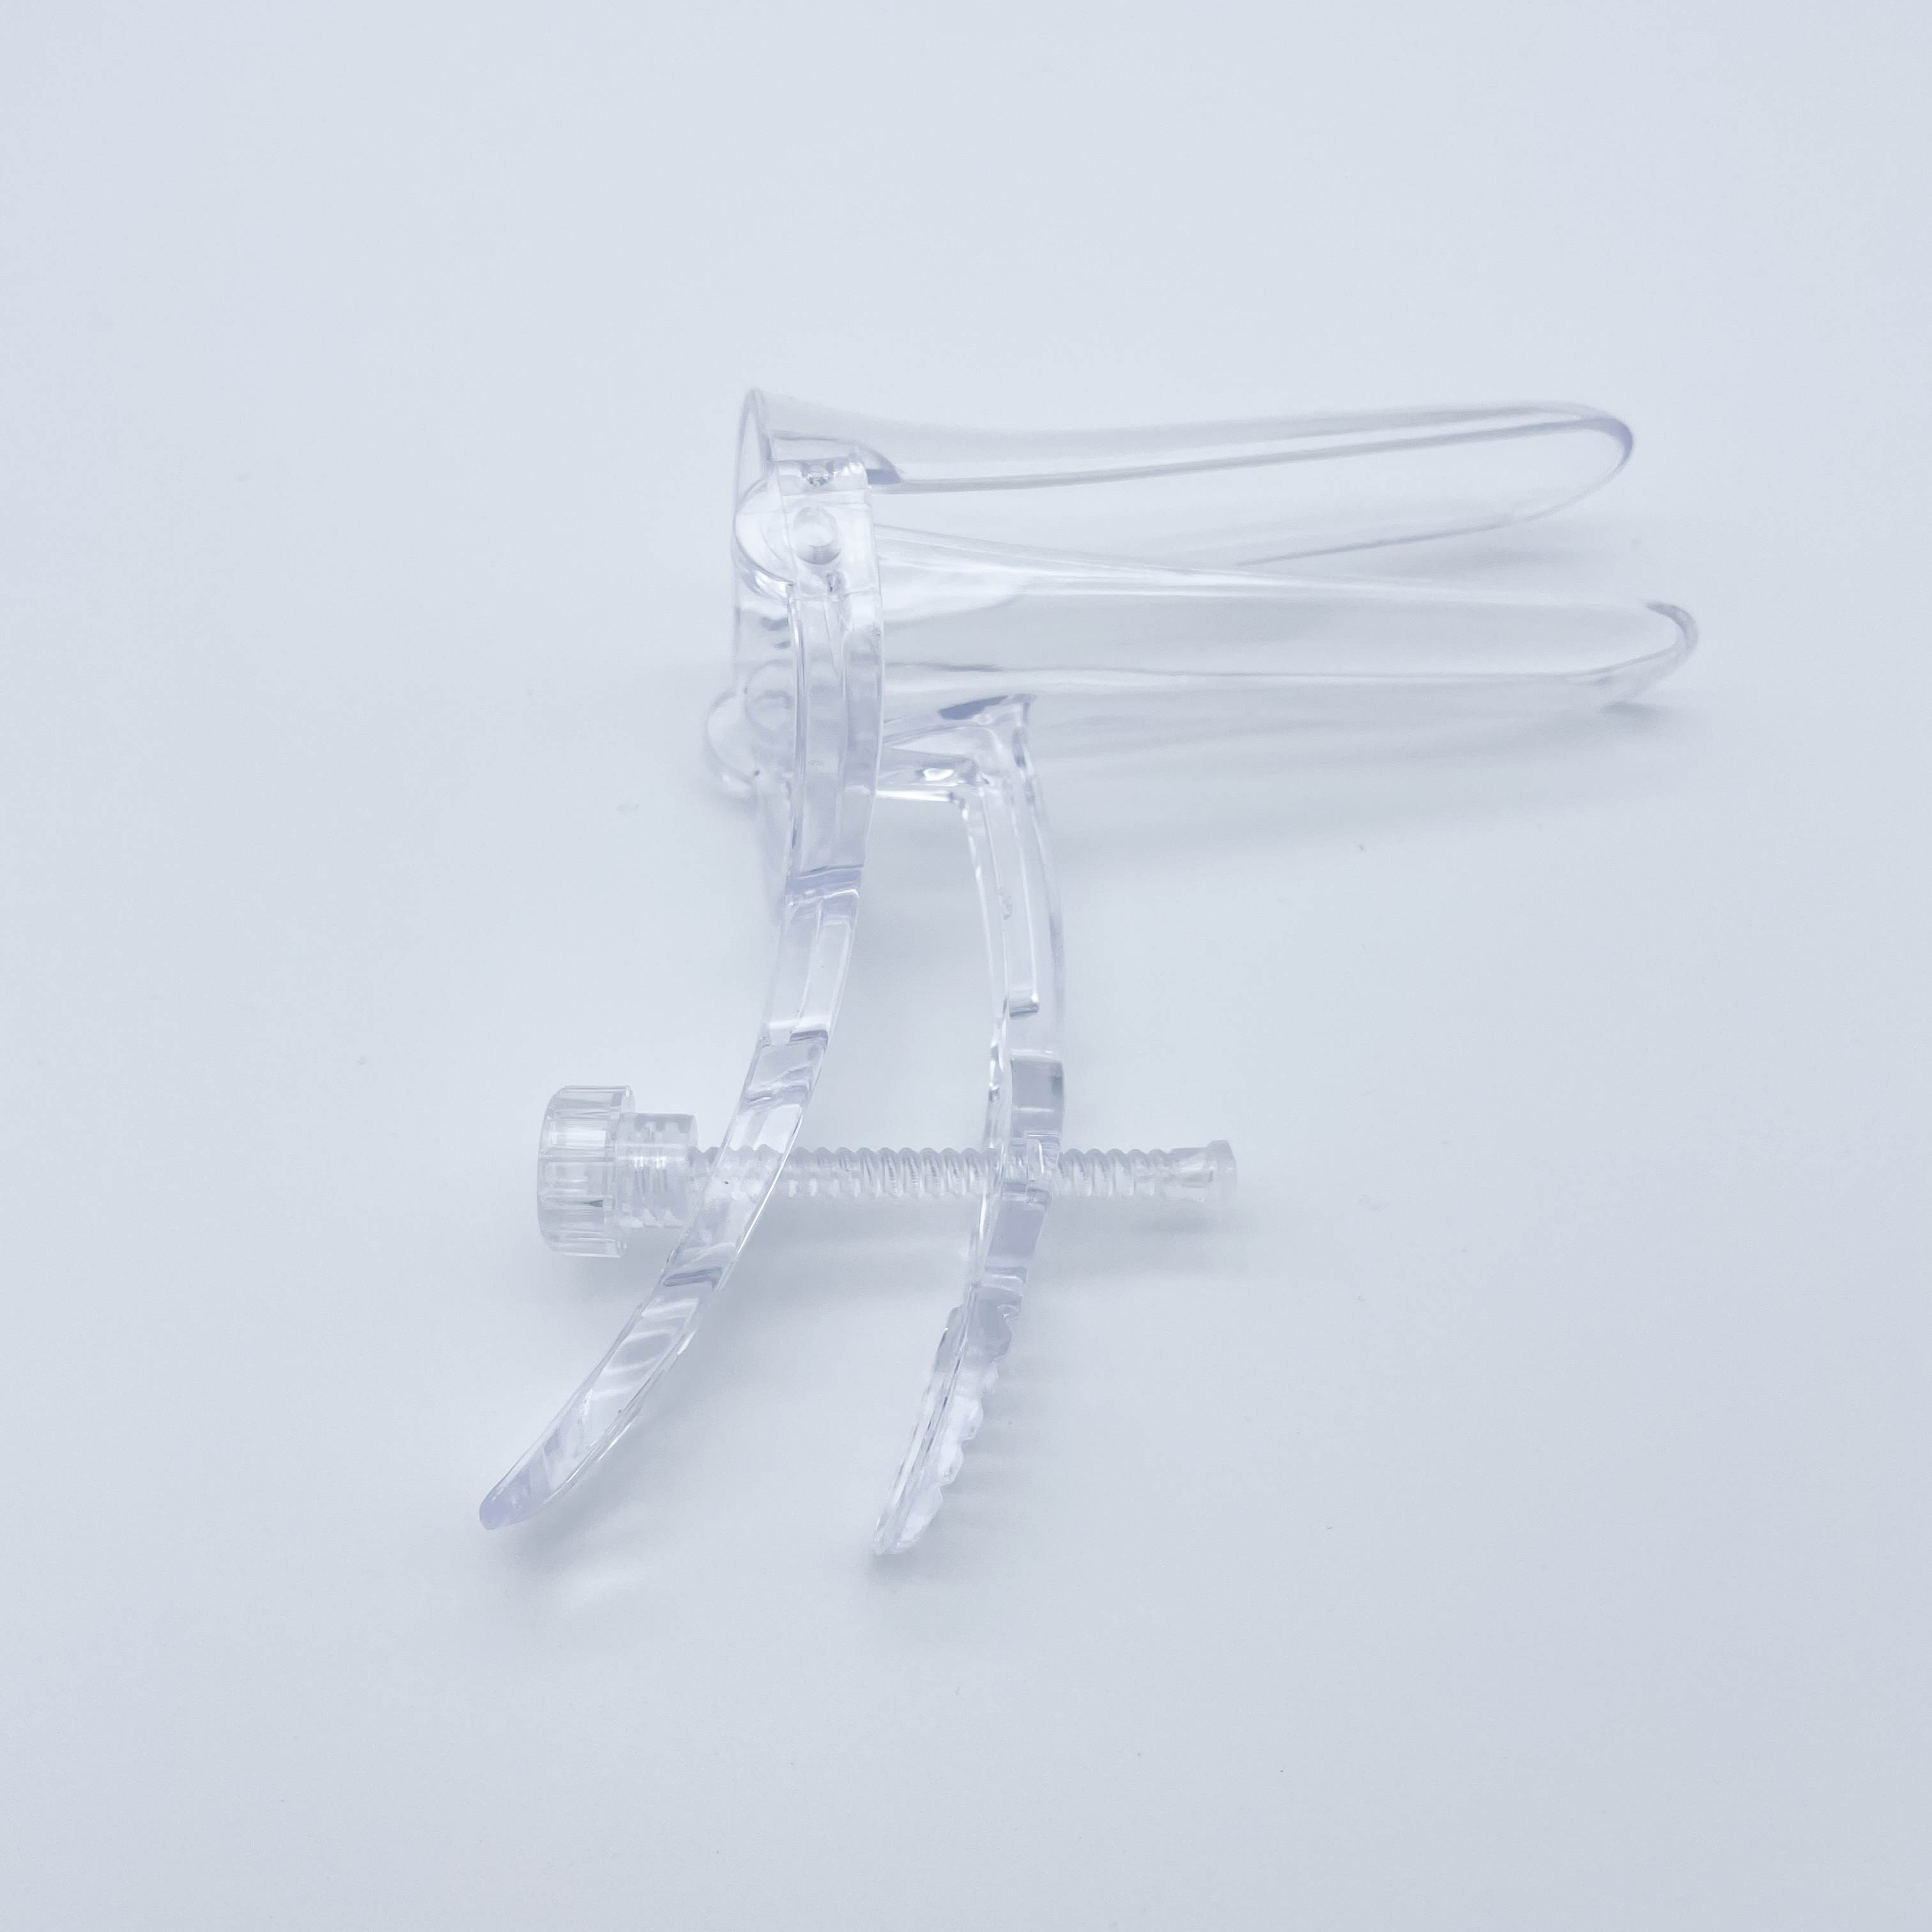 Lighe source disposable ps middle stick sterile plastic vaginal speculum germany gynecological examination